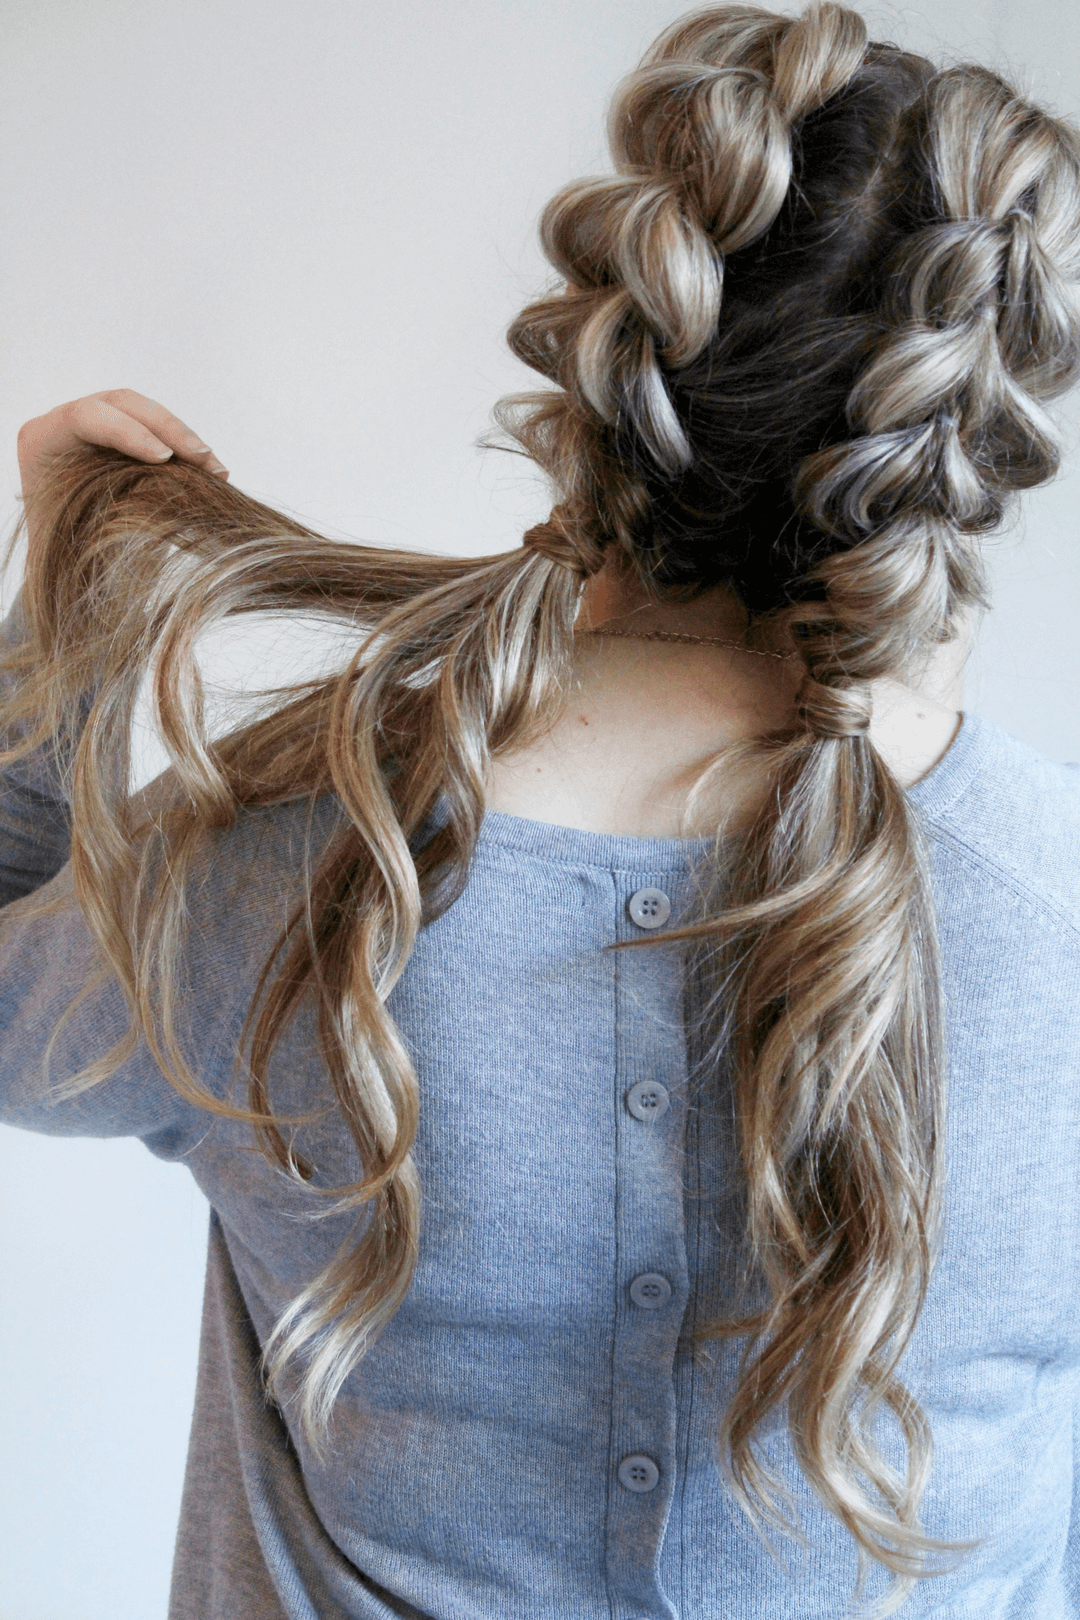 25 Braided Hair Inspirations That You Need To Try Out Hairstyles